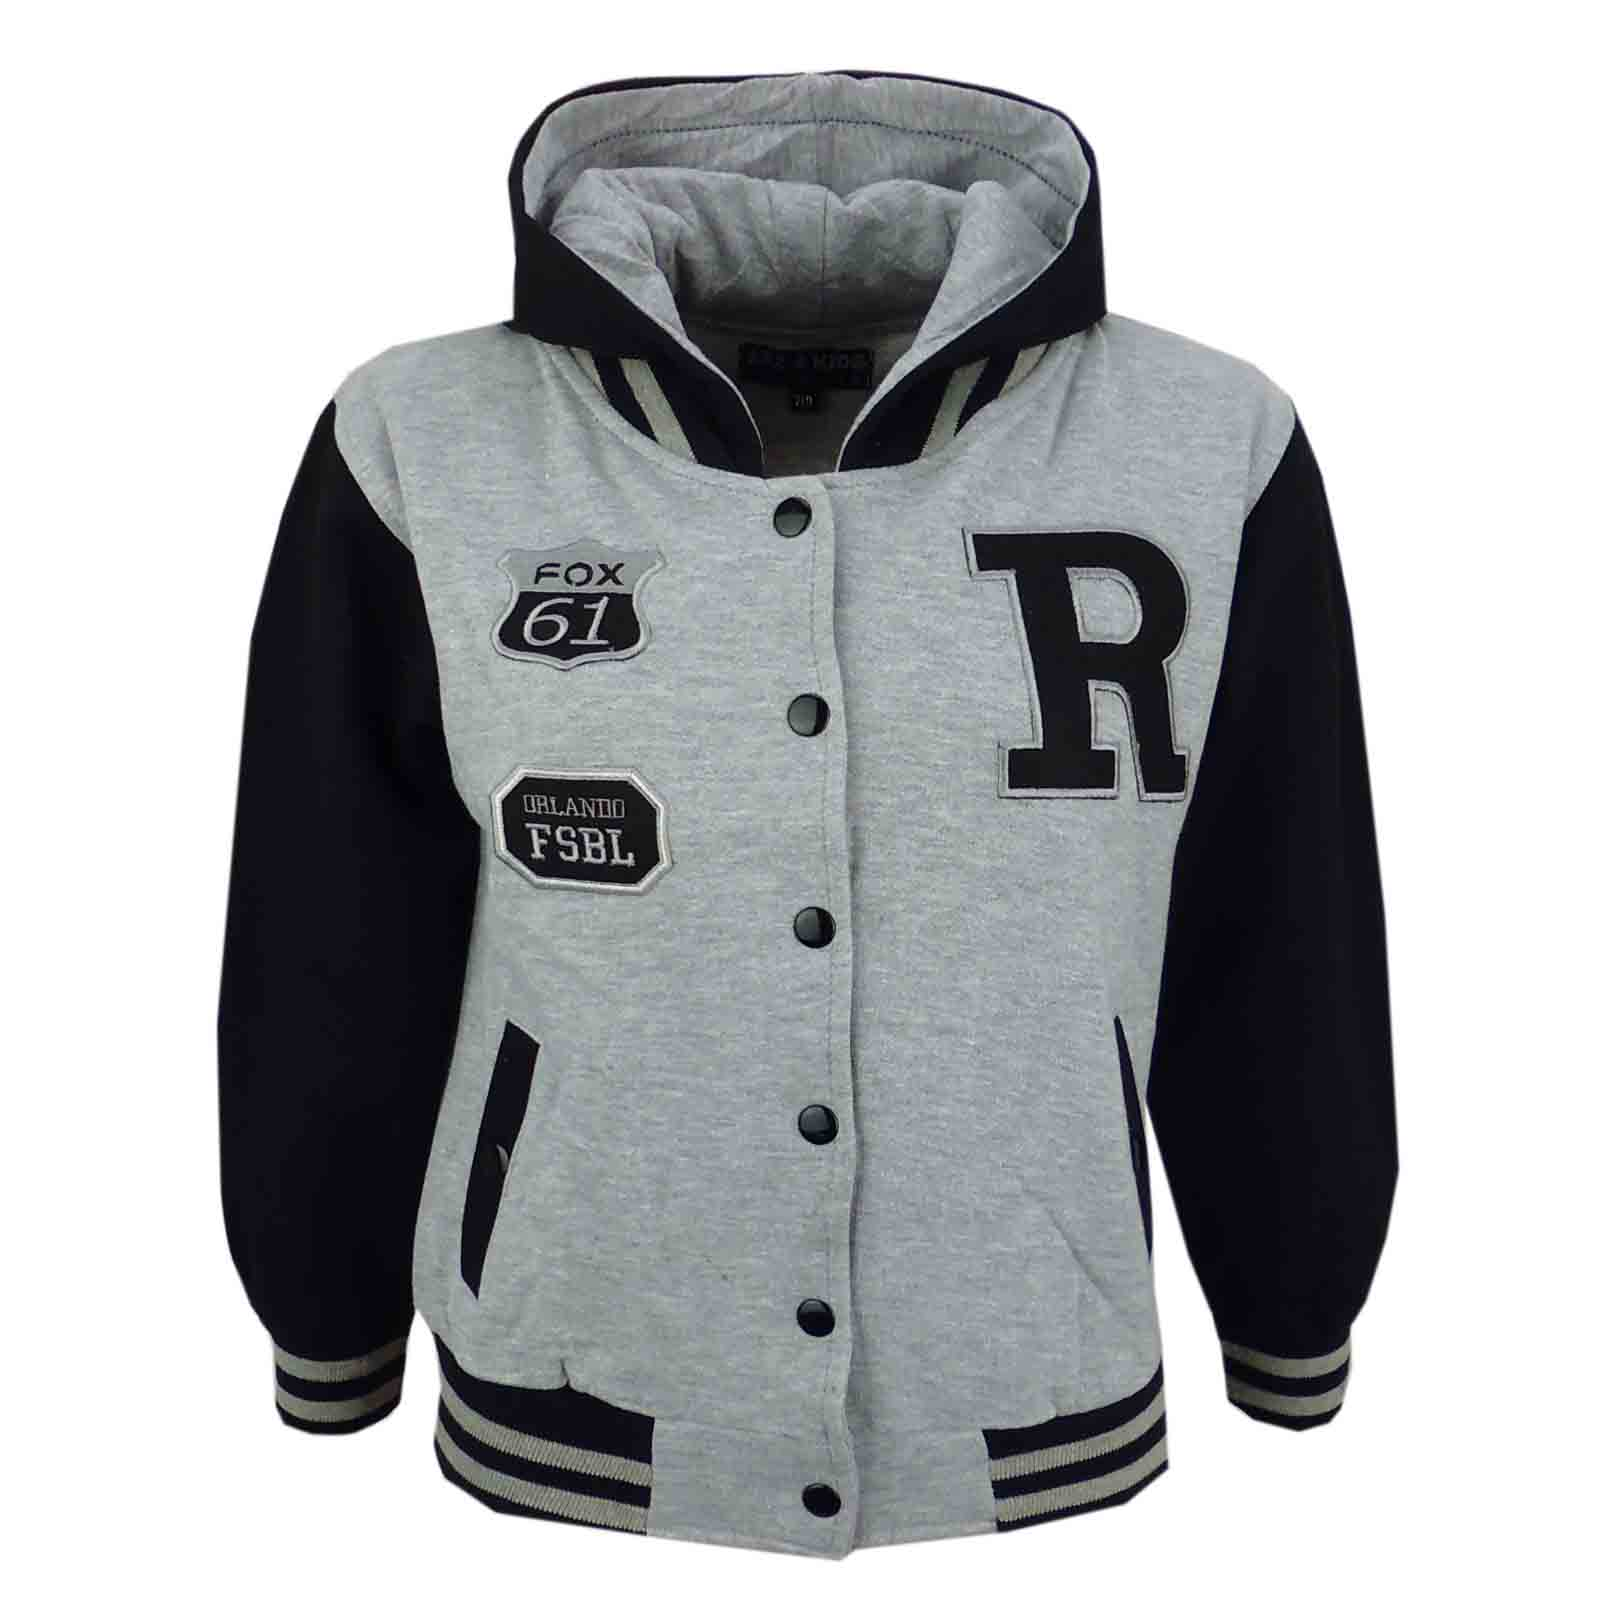 Kids Girls Boys R Fashion NYC FOX Baseball Hooded Jacket Varsity ...